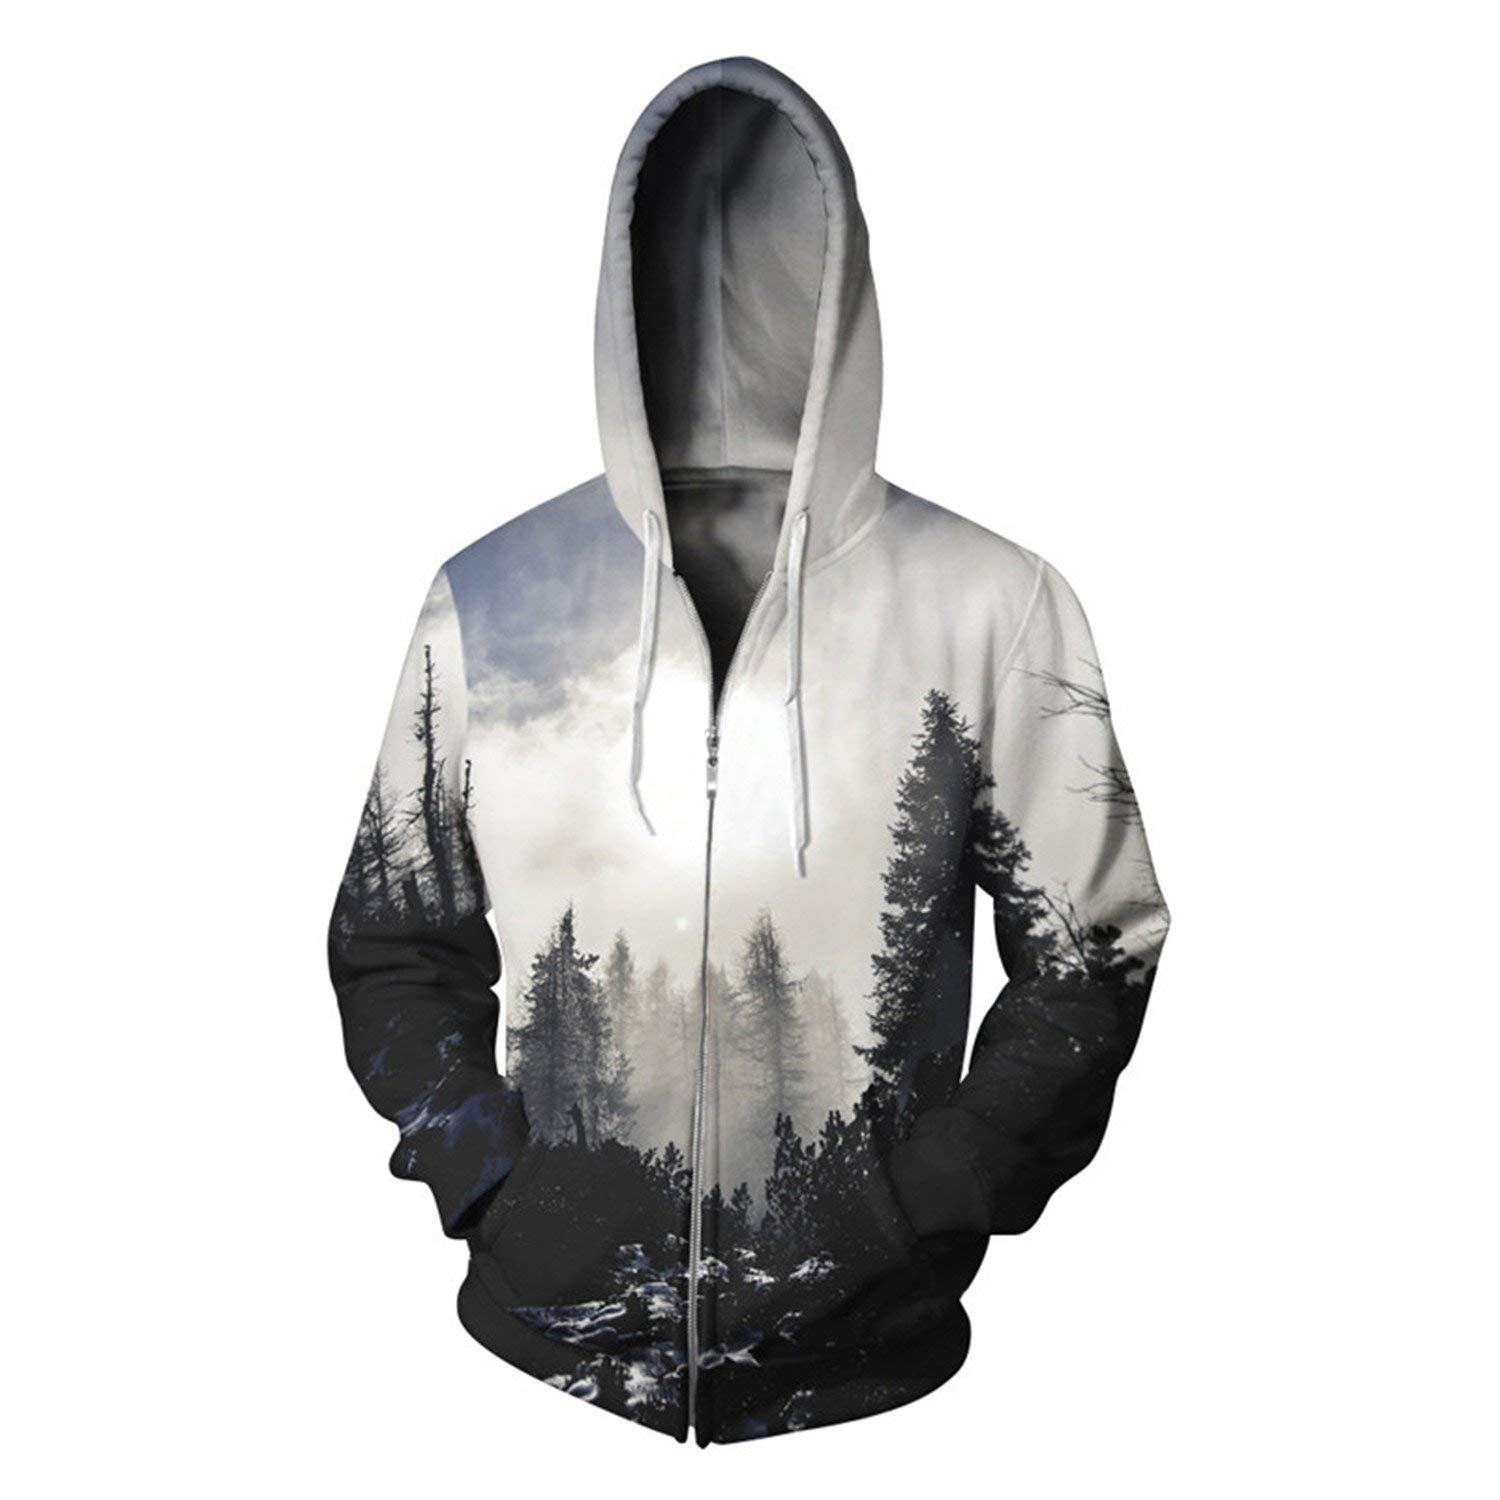 Thadensama 2017 Foggy Forest Printed Mens Hoodies Autumn Hoodie Hip Hop Hipster Casual Men Sweatshirts